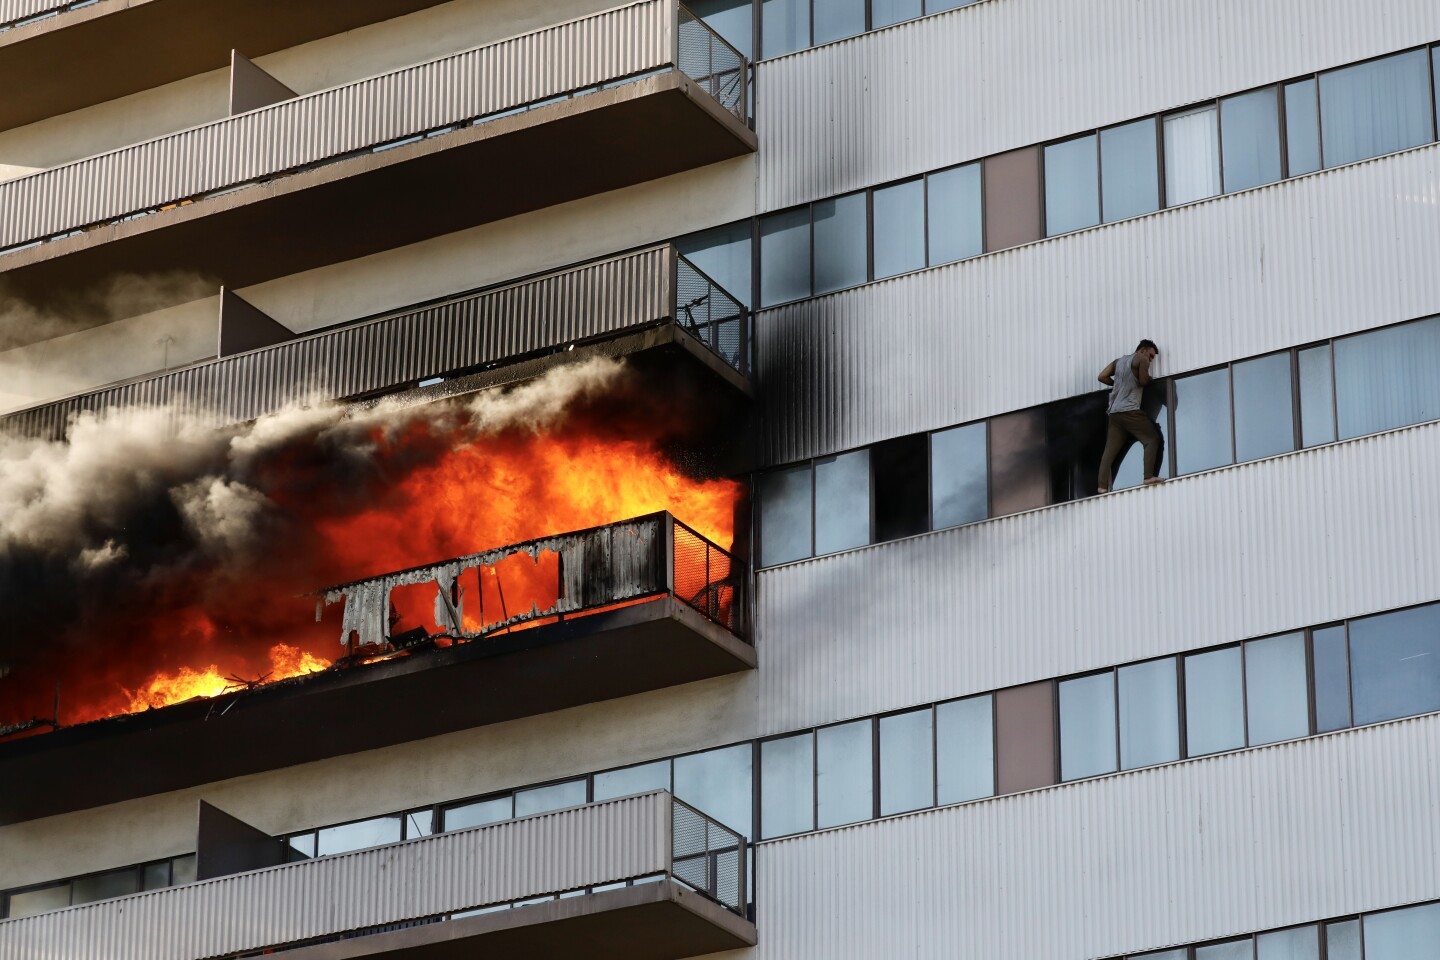 485654-me-los-angeles-high-rise-fire01_ALS.JPG